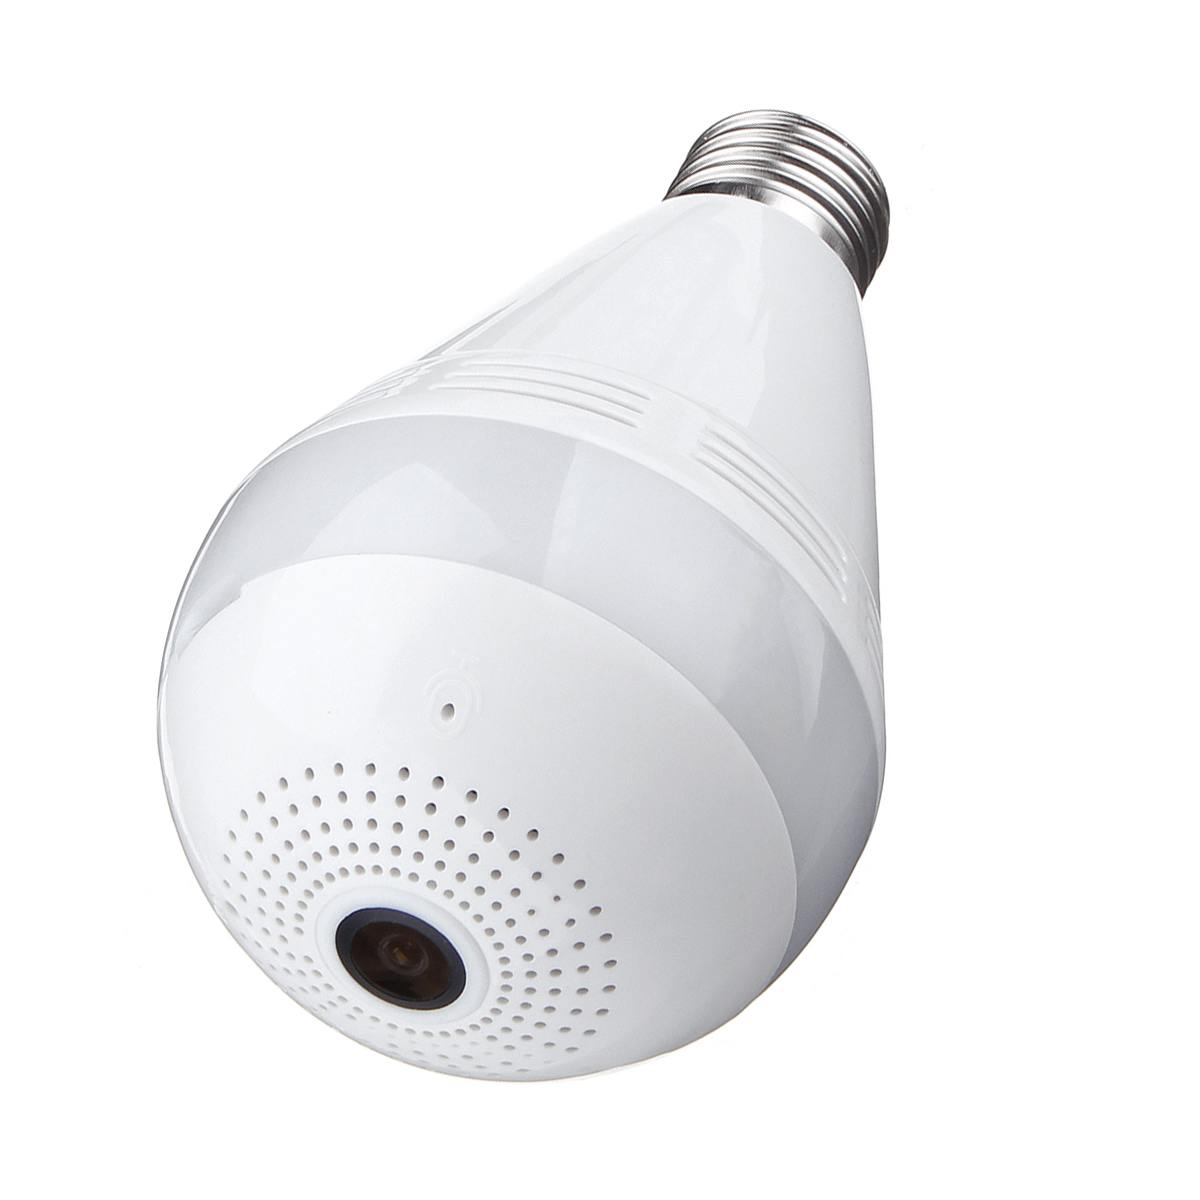 Image 4 - E27 Wireless bluetooth Speaker Bulb Music Playing Dimmable LED Lamp Light Bulb IP Camera Wifi FishEye CCTV Home Security Camera-in LED Bulbs & Tubes from Lights & Lighting